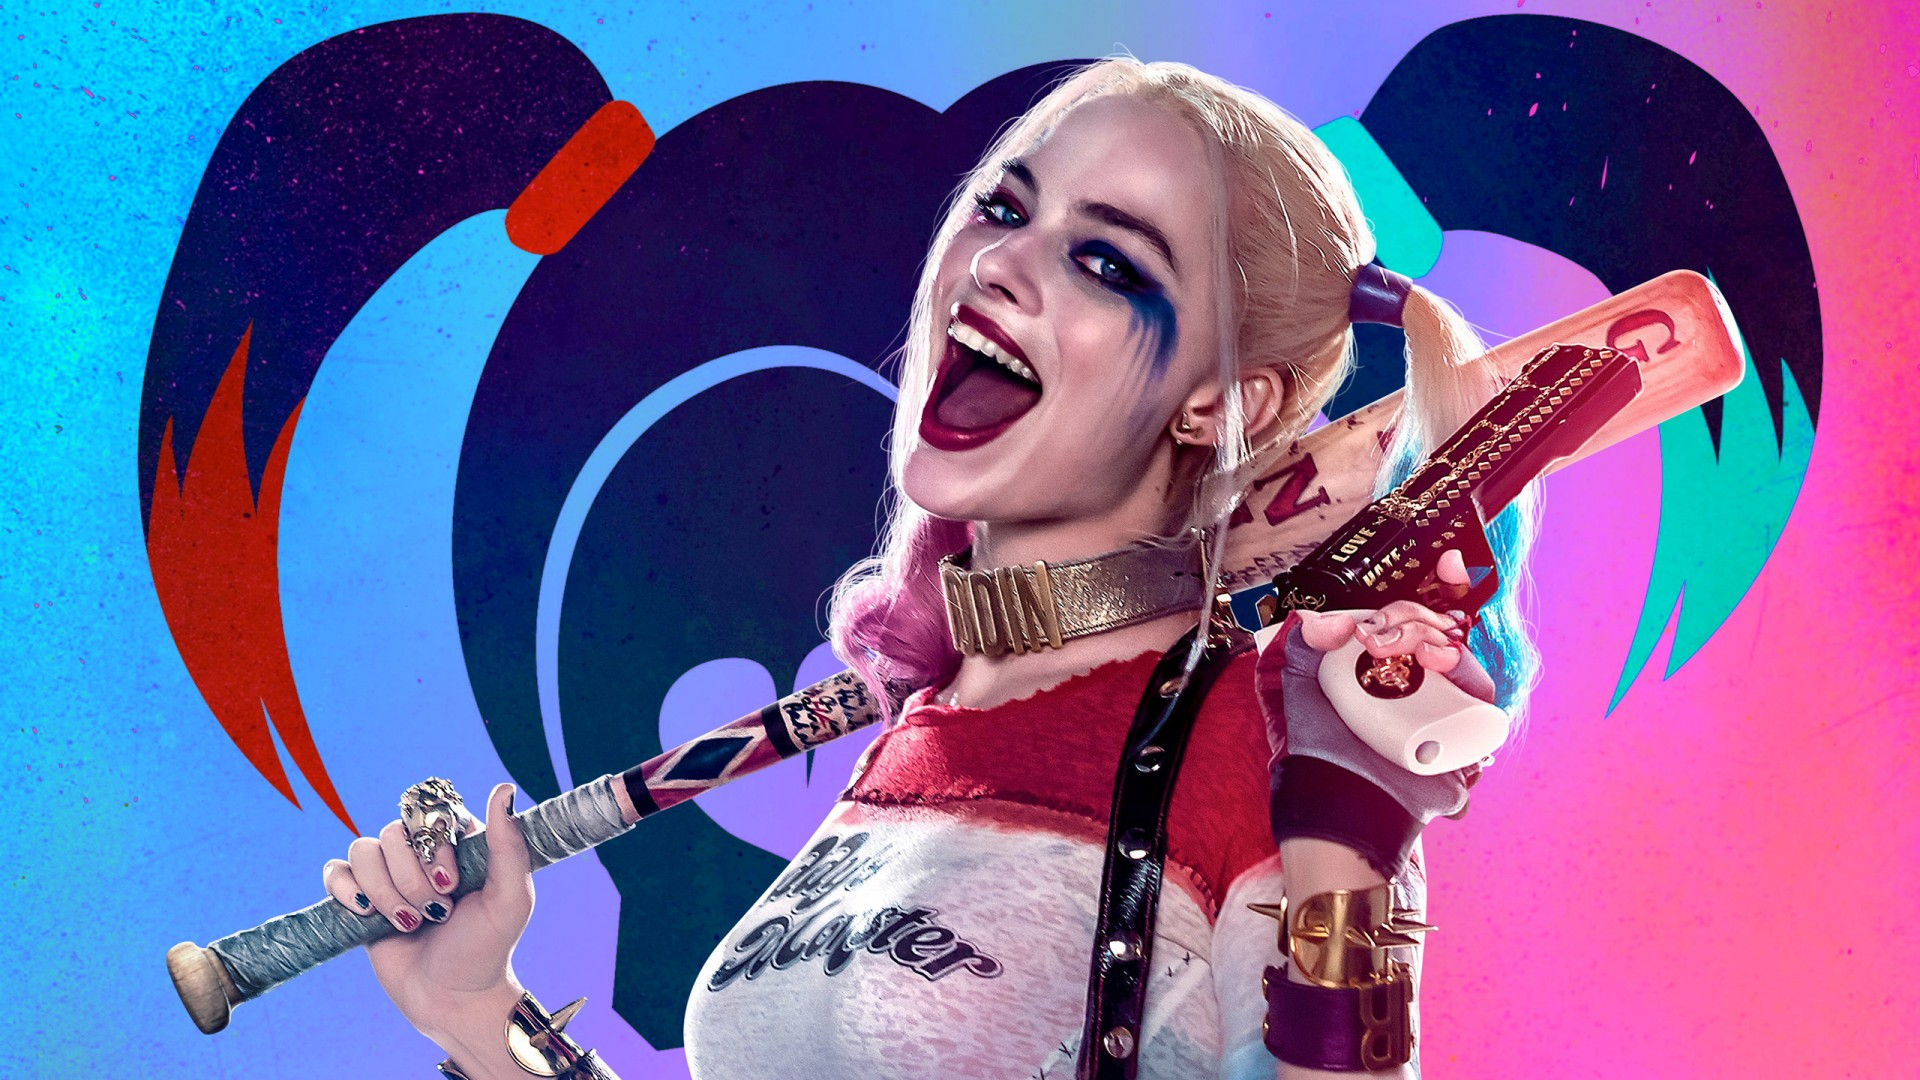 Diesel Wallpaper Iphone Suicide Squad Harley Quinn Wallpapers Hd Wallpapers Id